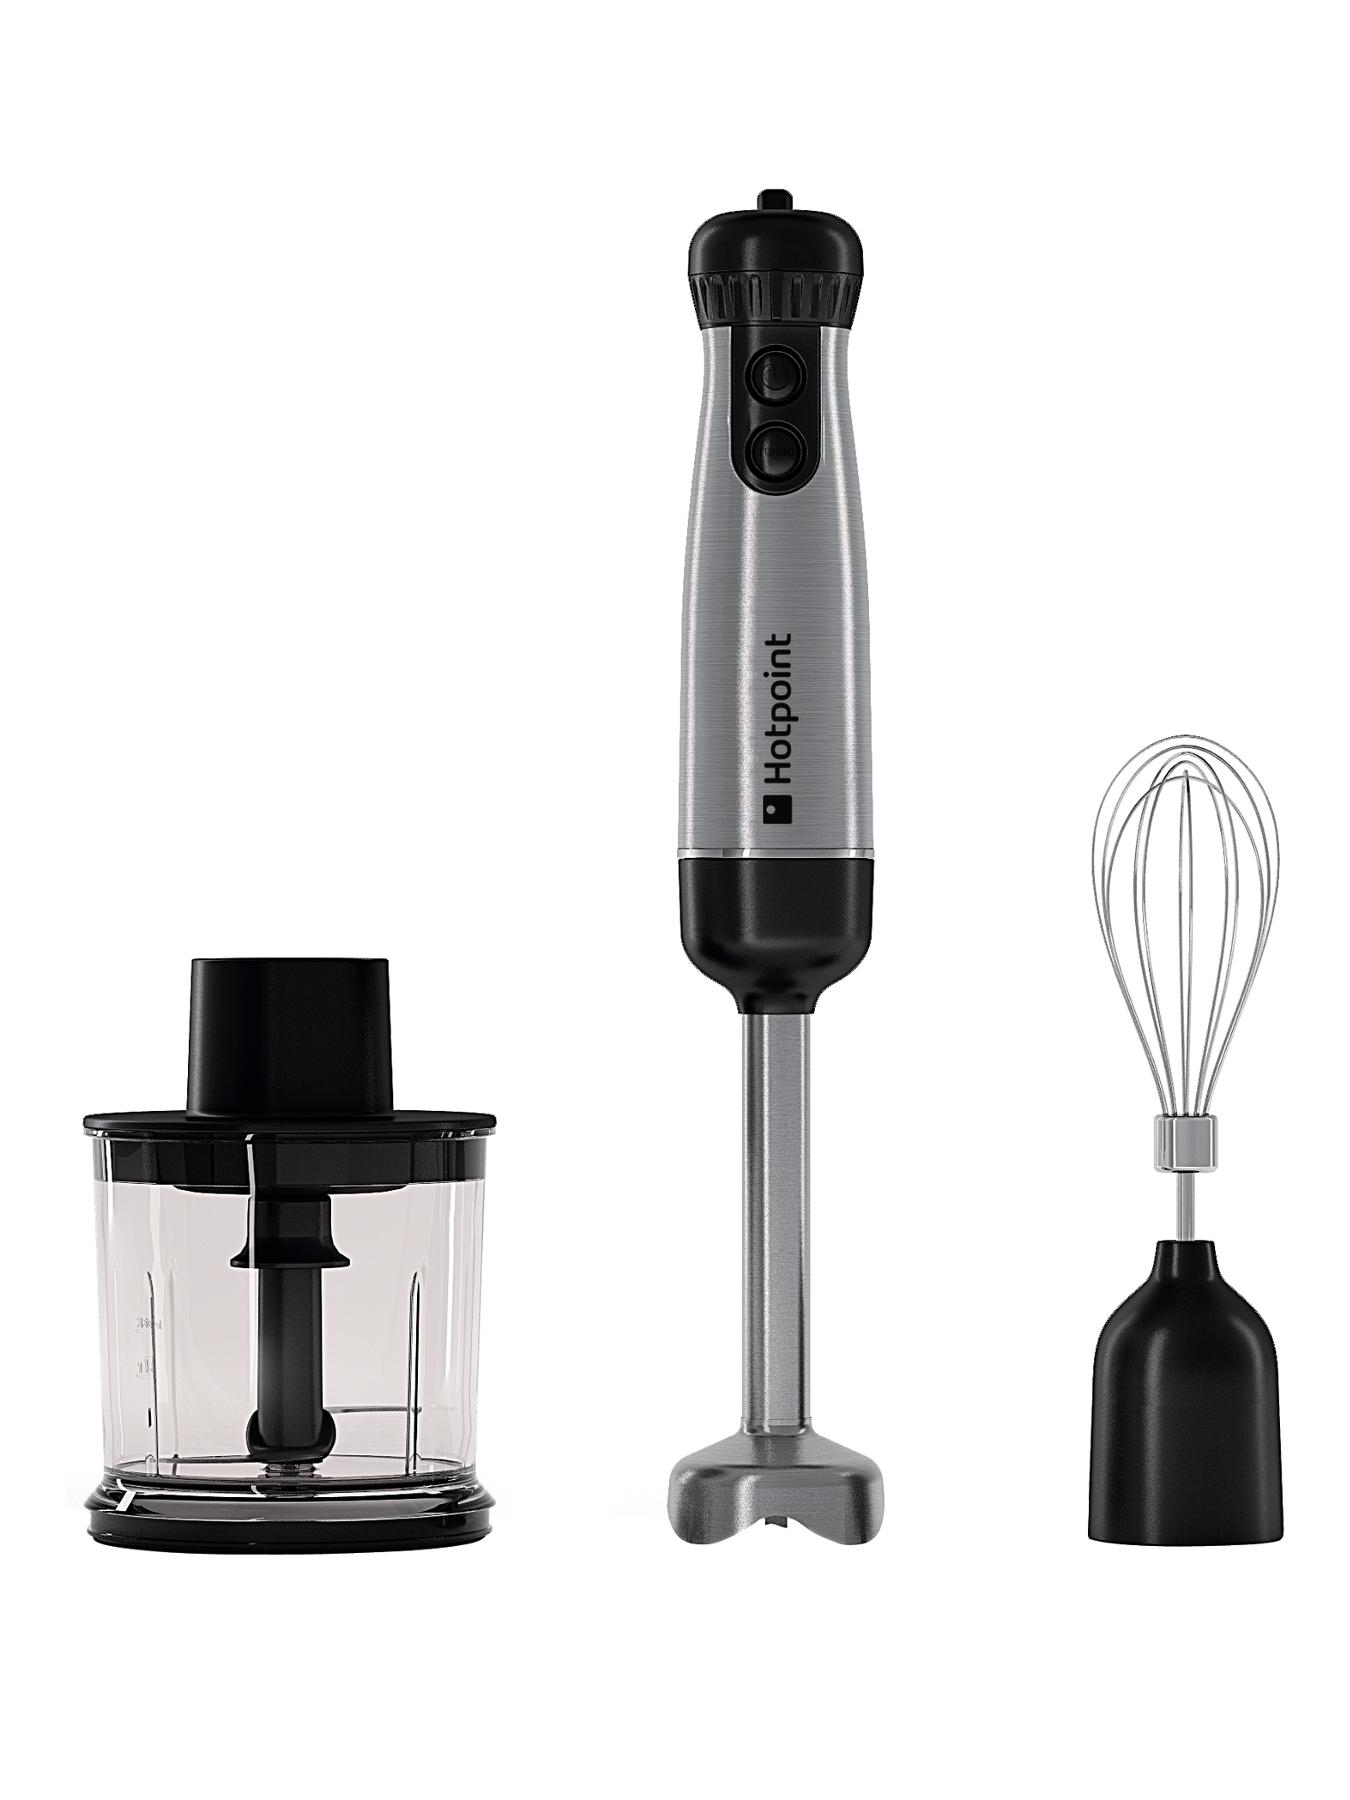 HB0703AX0UK 3-in-1 Hand Blender